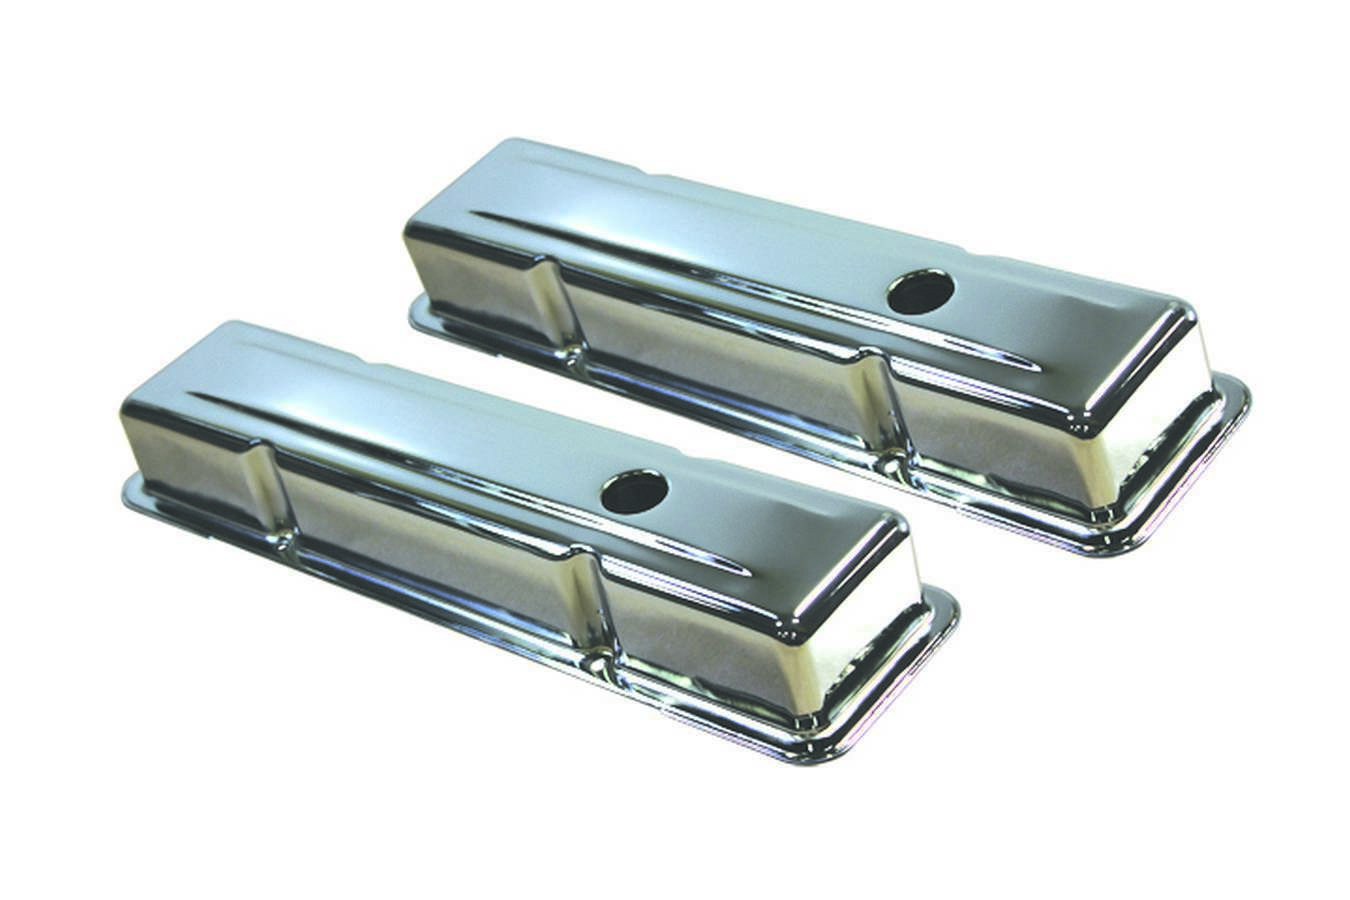 Specialty Products 8196 Valve Cover, Stock Height, Baffled, Breather Holes, Steel, Chrome, Small Block Chevy, Pair